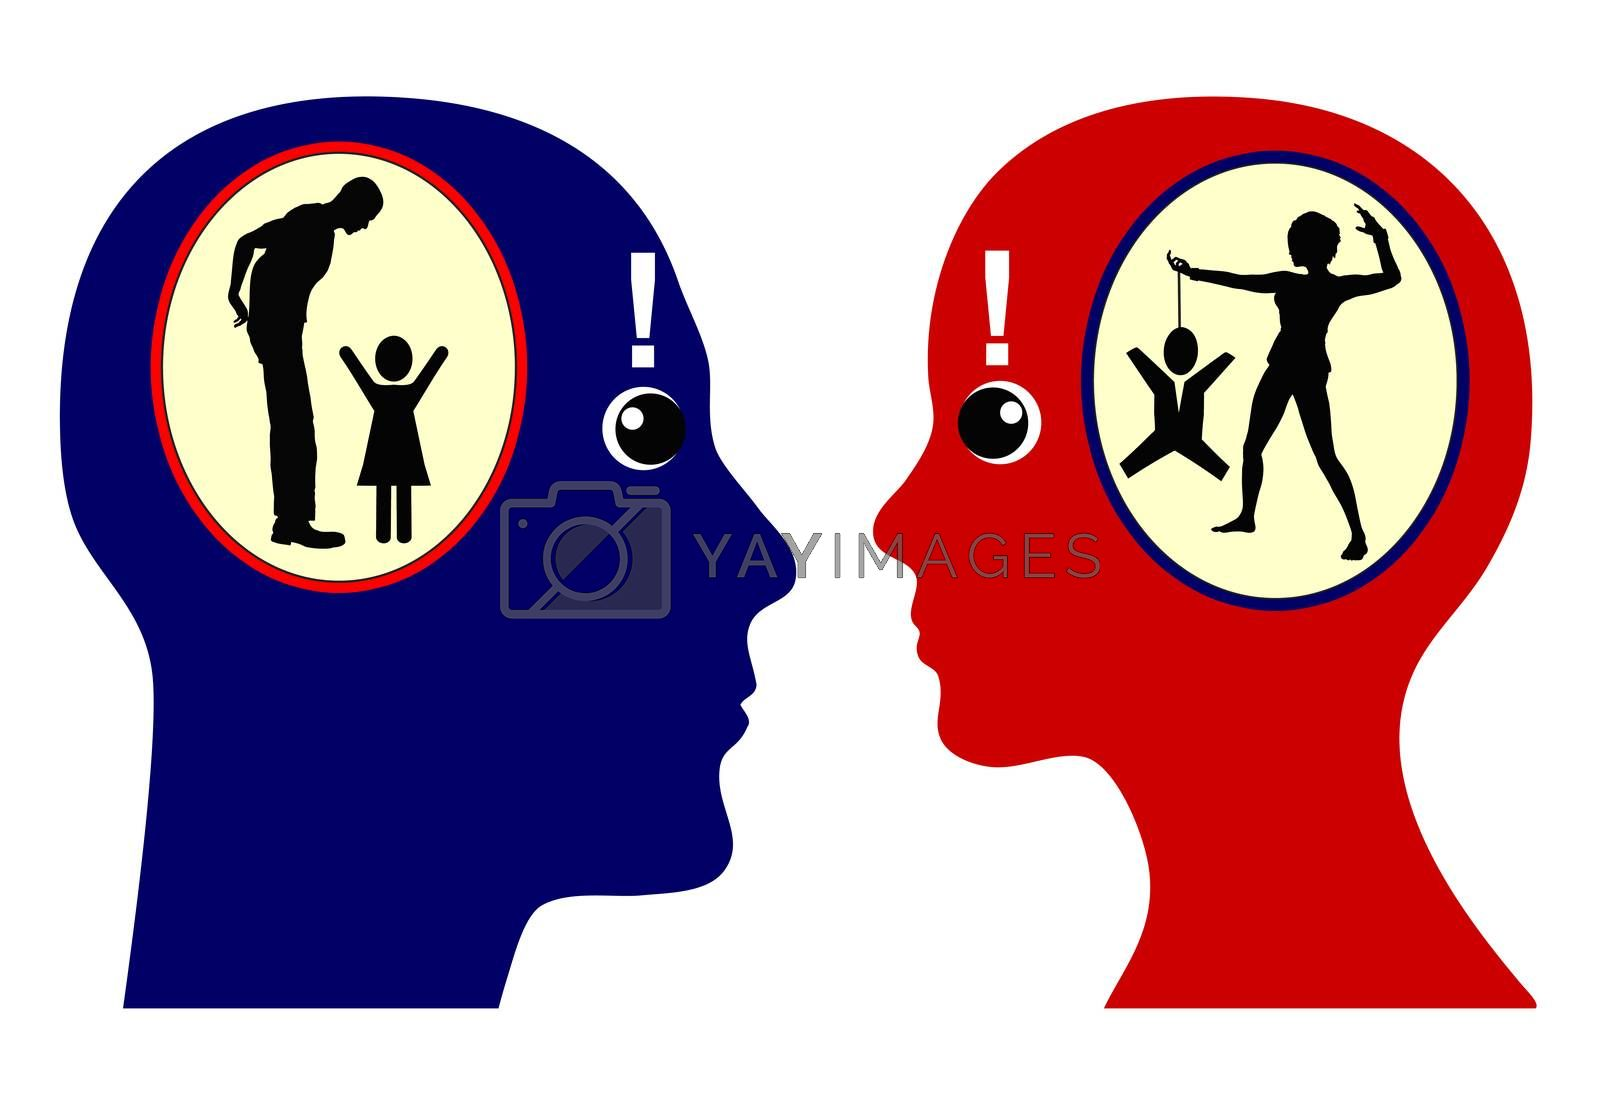 Man and woman with discrepancy between self awareness and external perception, how we see and describe ourselves and how others see and would describe us